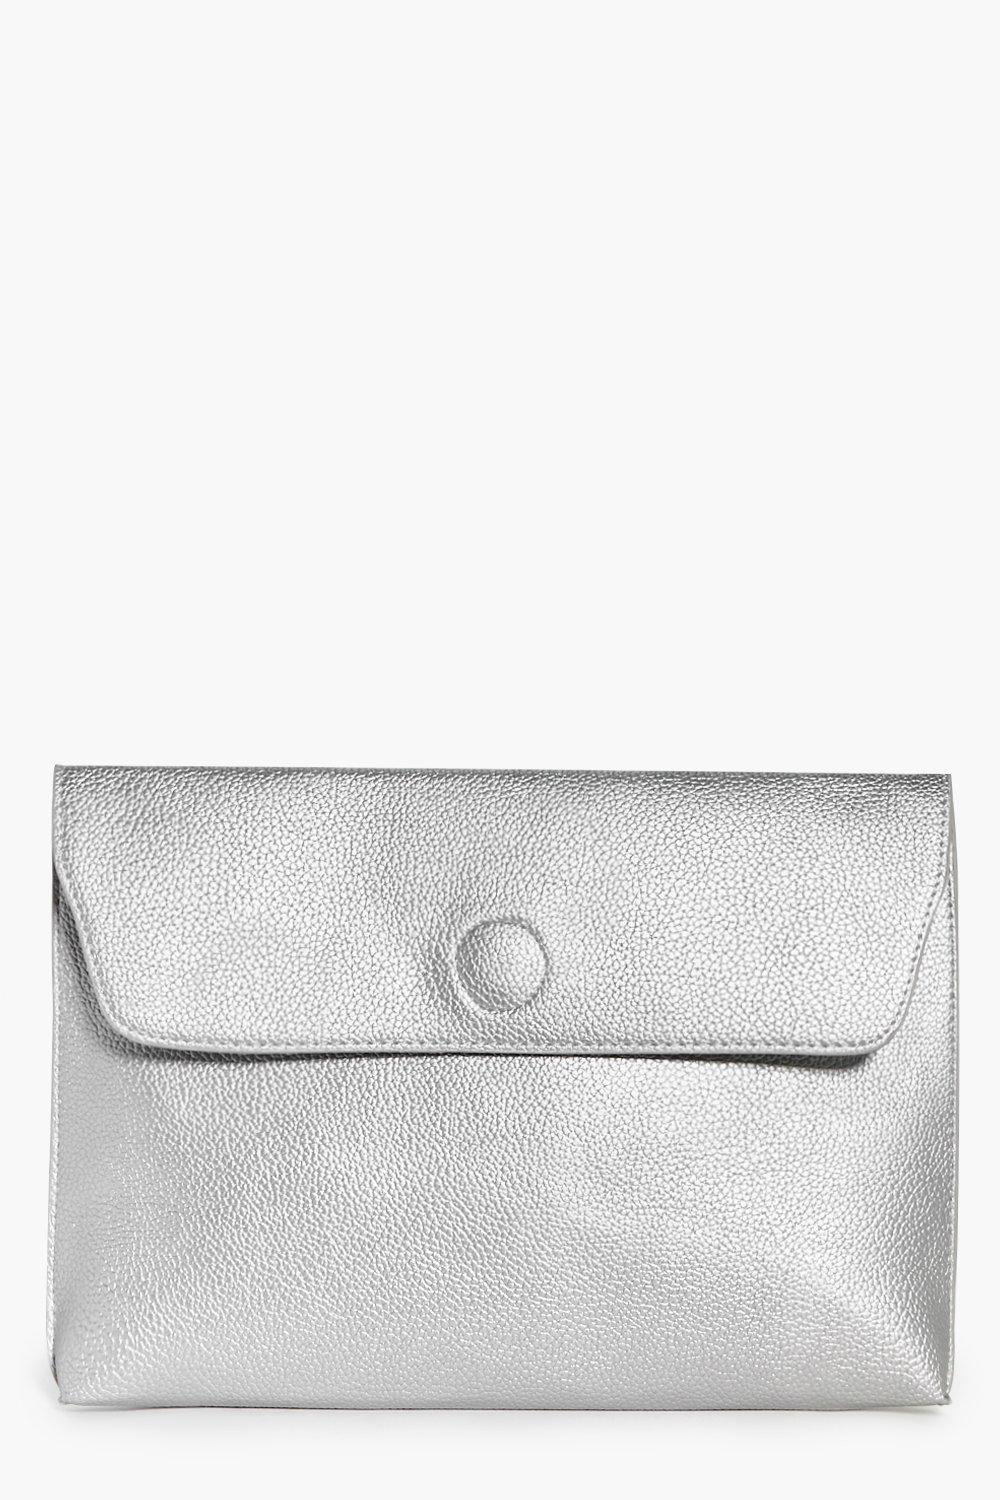 162f967e36 Womens Silver Lena Oversized Metallic Clutch Bag. Hover to zoom